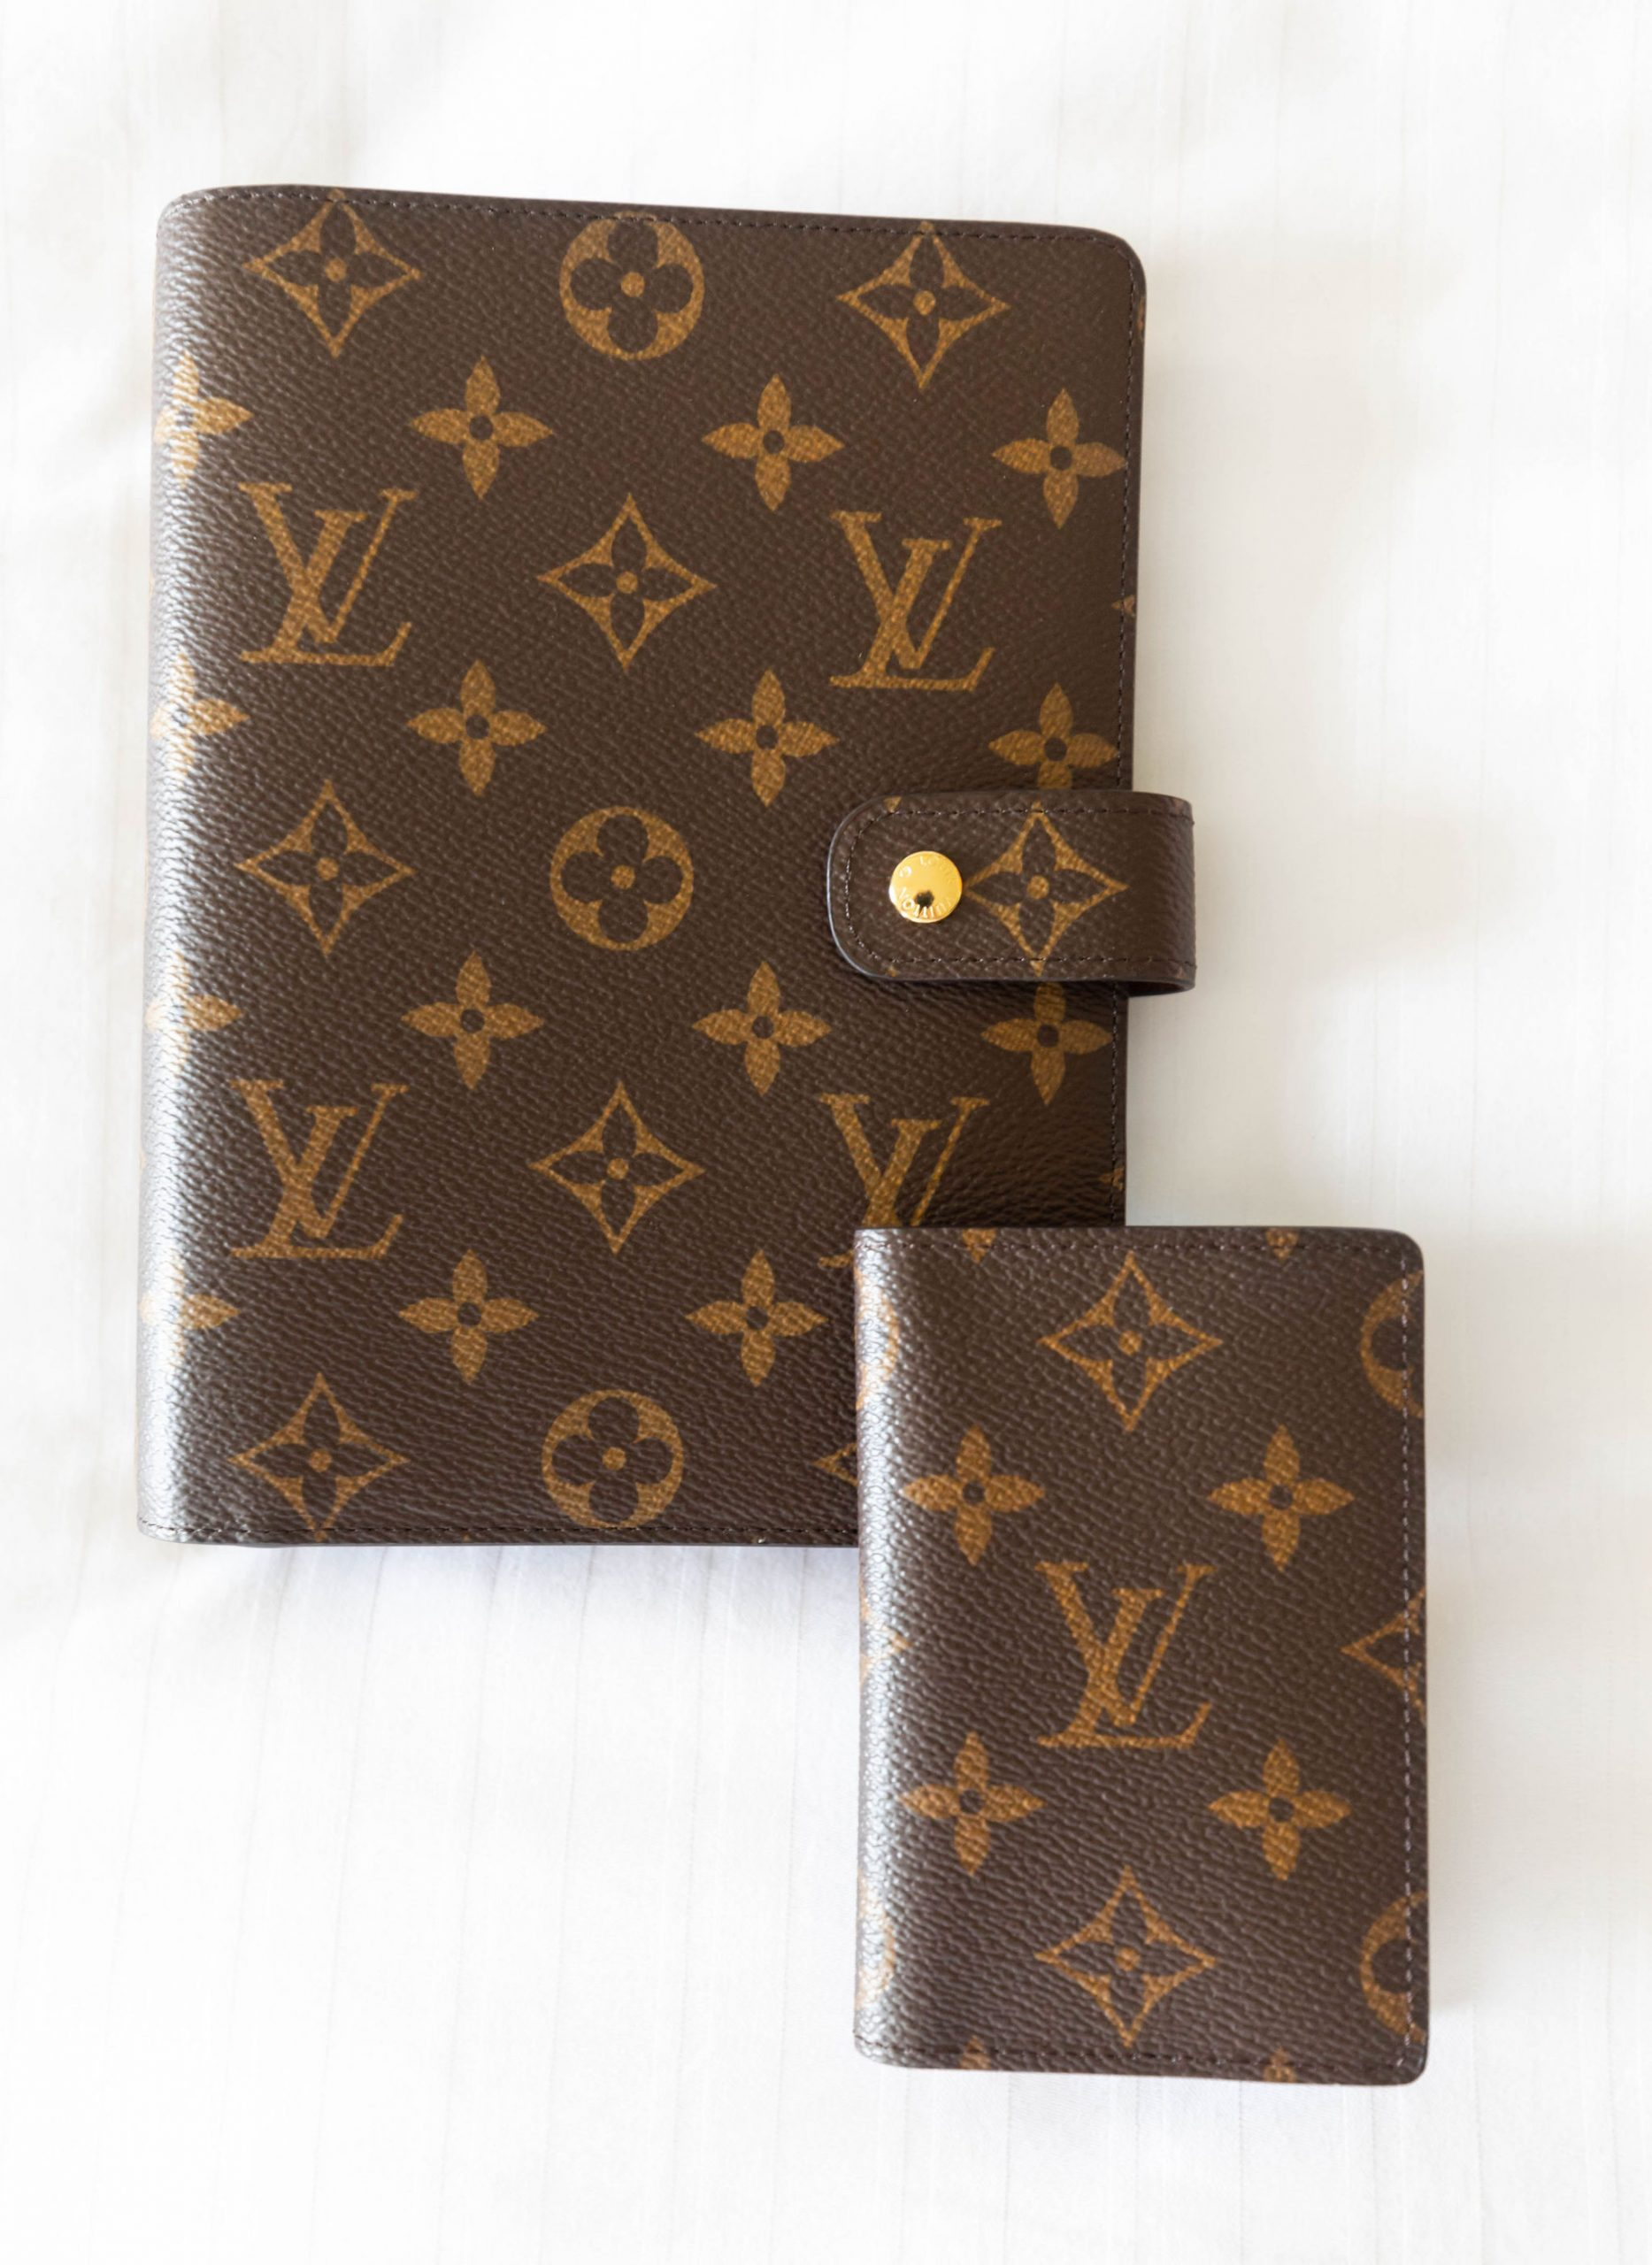 Louis Vuitton at Belmond Charleston Place luxury Hotels of the World South Carolina Resorts Written & Photographed by Annie Fairfax